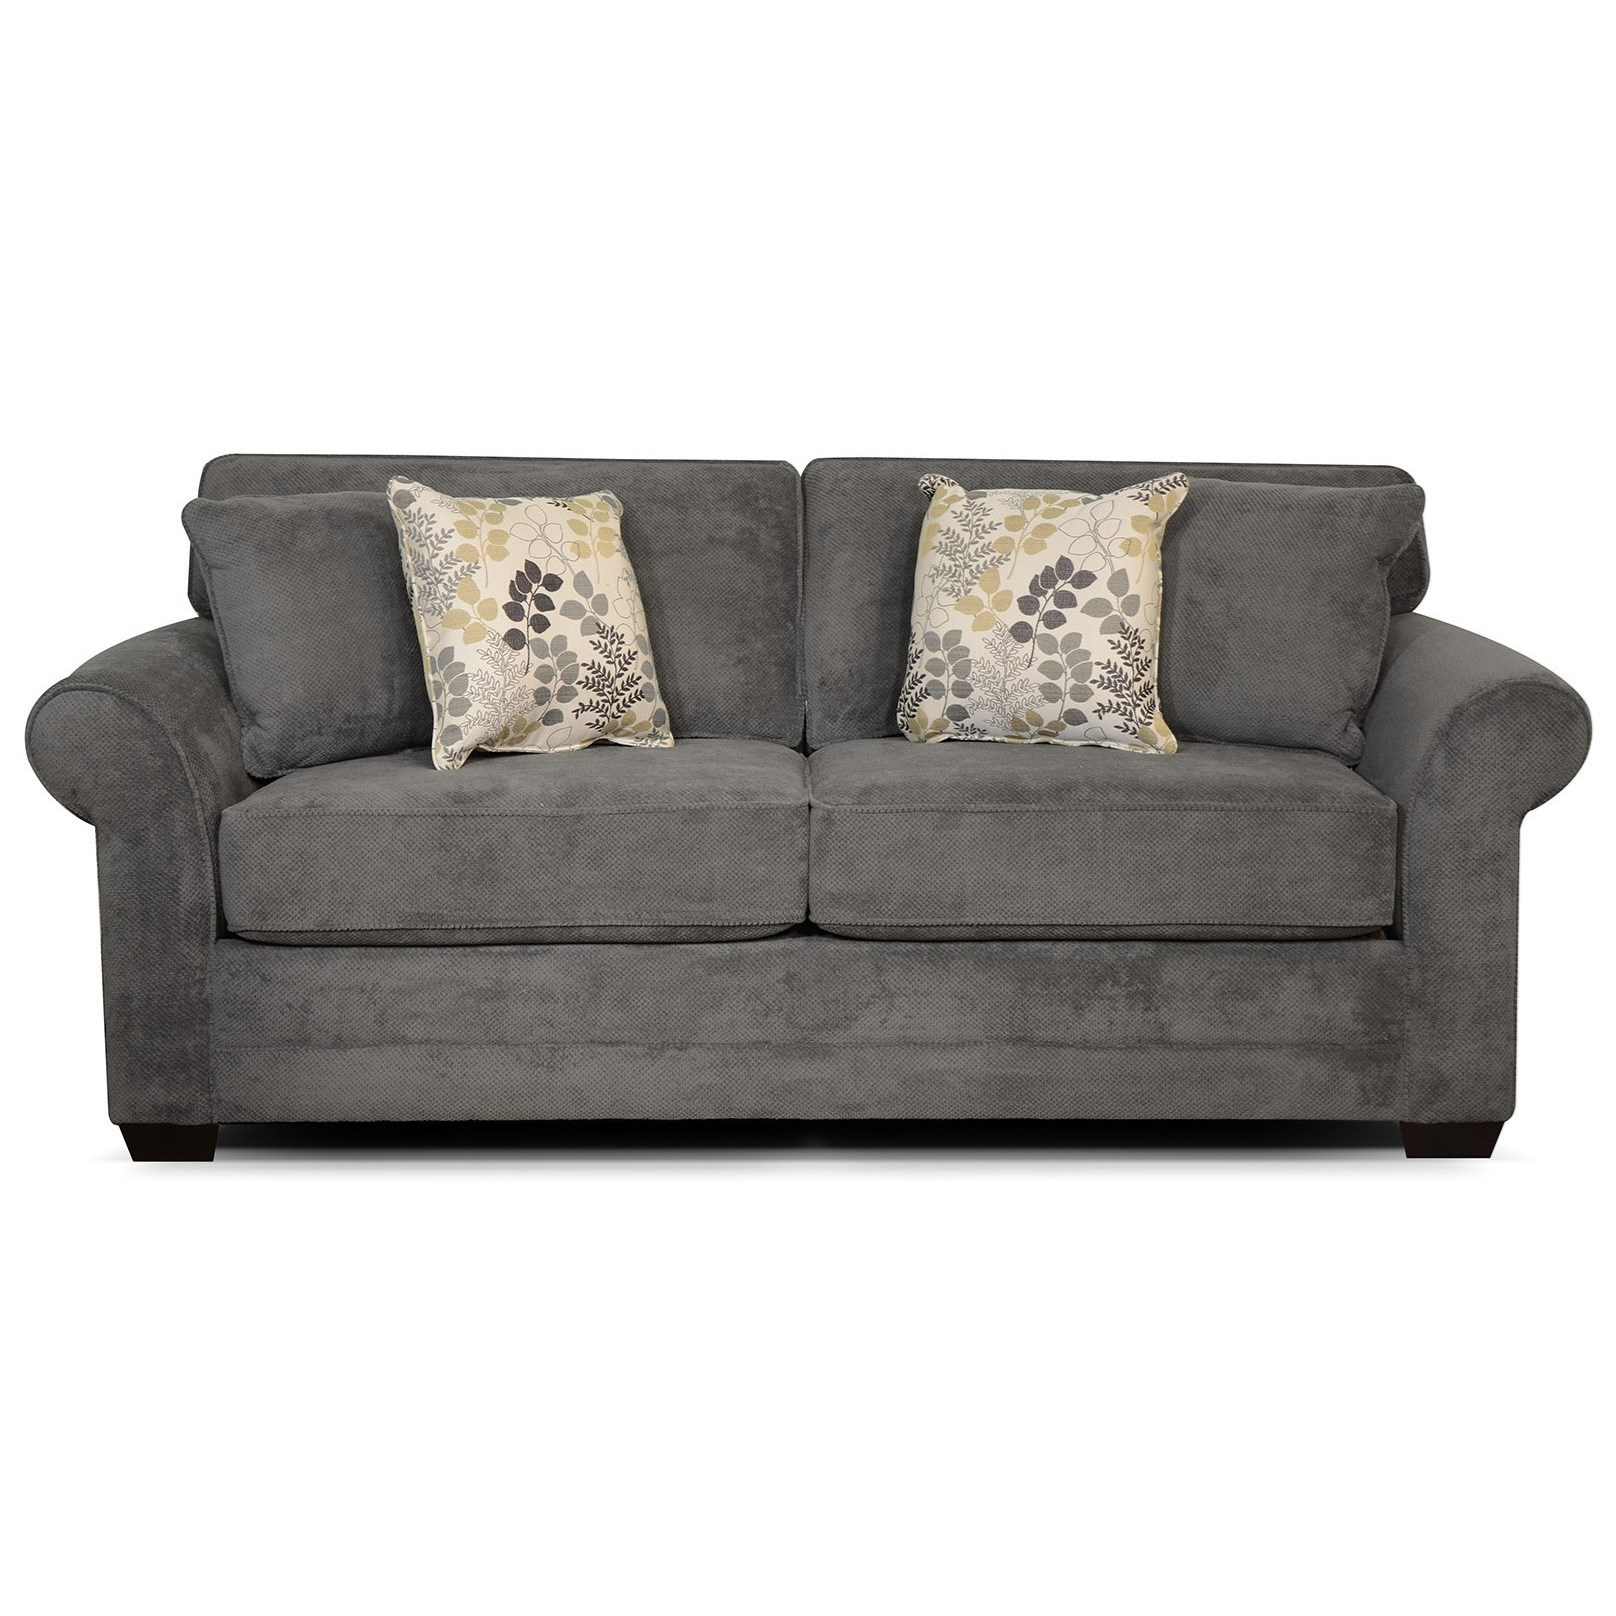 Brantley Upholstered Sofa by England at Prime Brothers Furniture